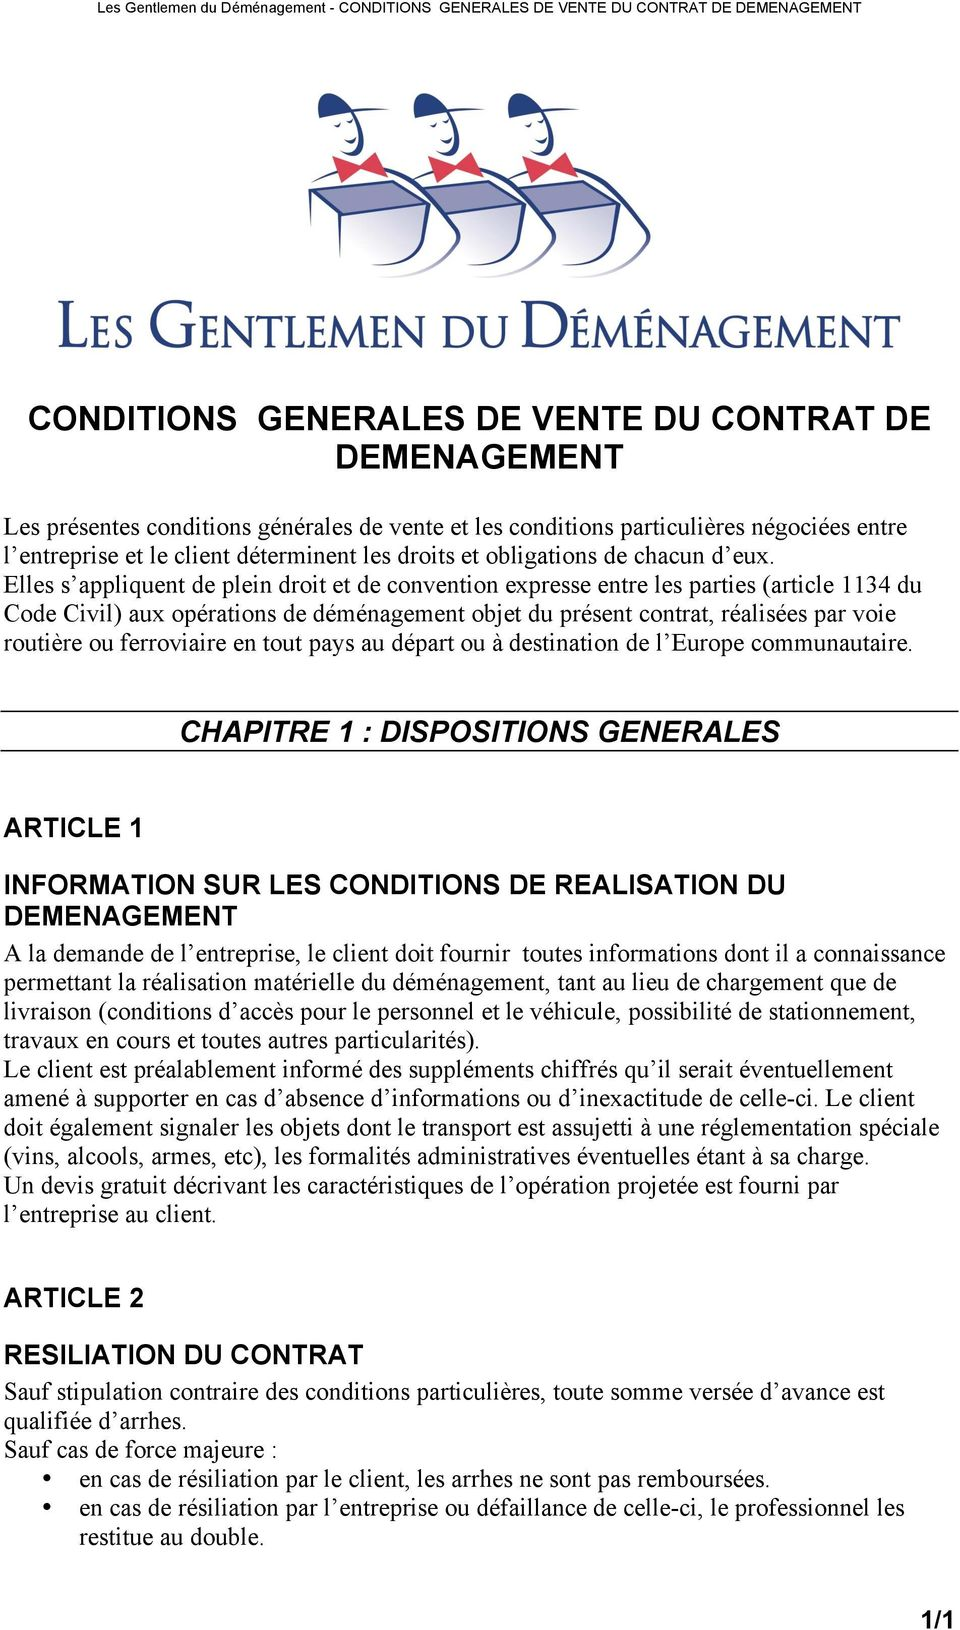 Elles s appliquent de plein droit et de convention expresse entre les parties (article 1134 du Code Civil) aux opérations de déménagement objet du présent contrat, réalisées par voie routière ou